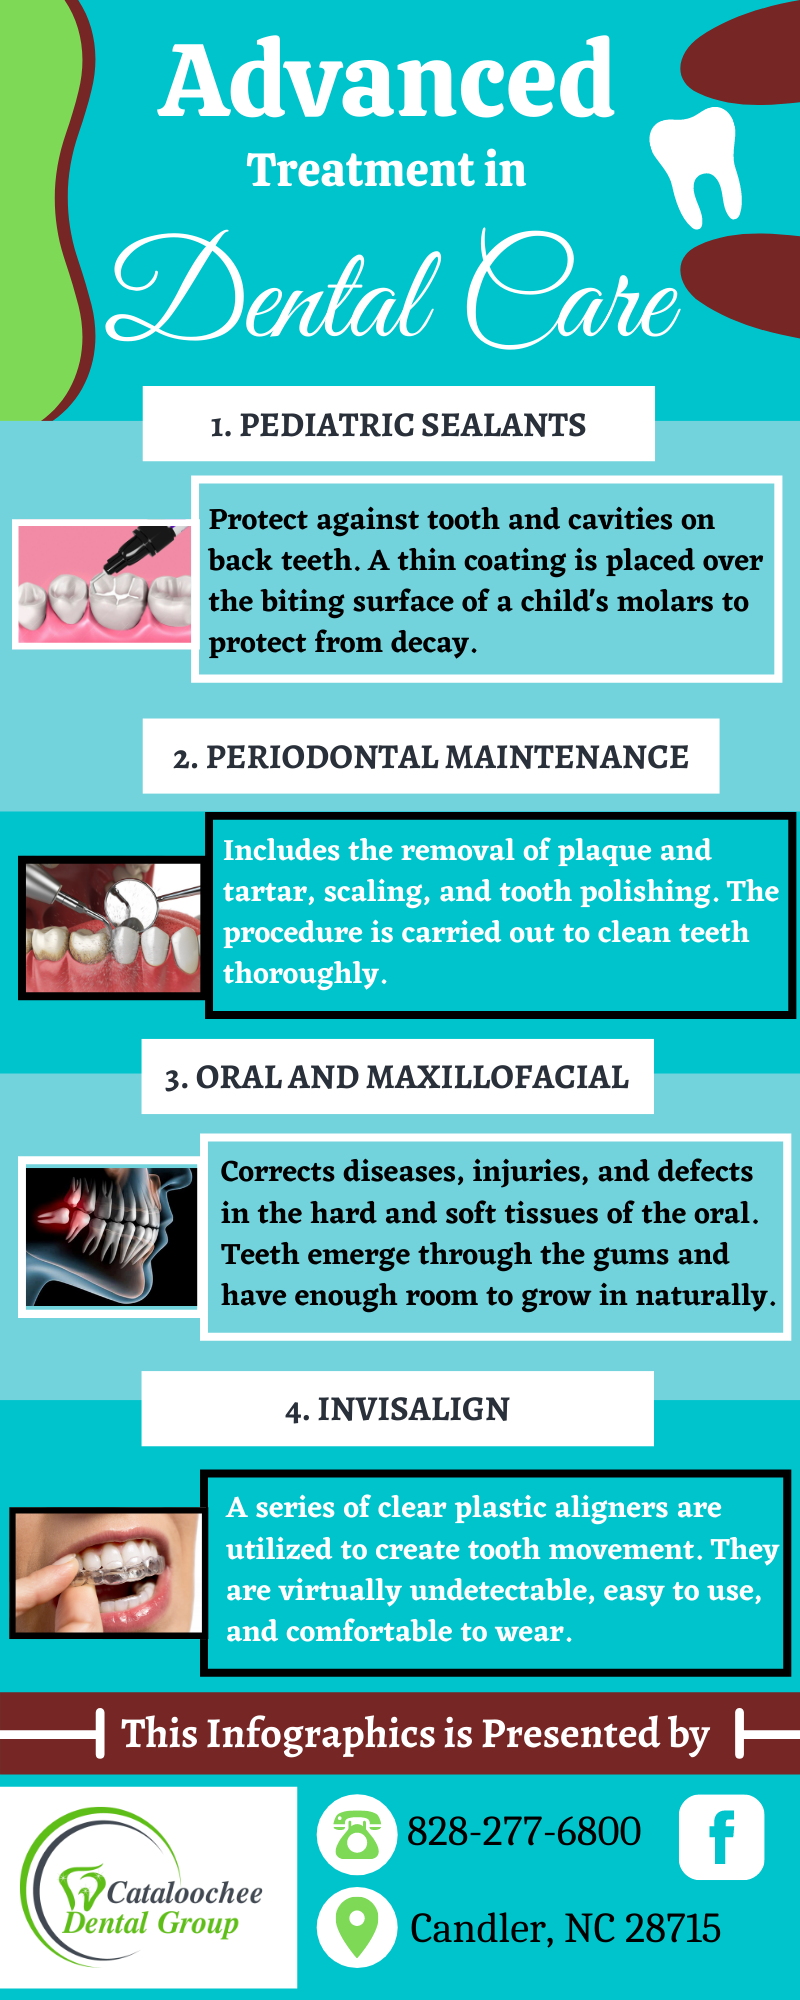 Improve the Oral Health by Trending Technology